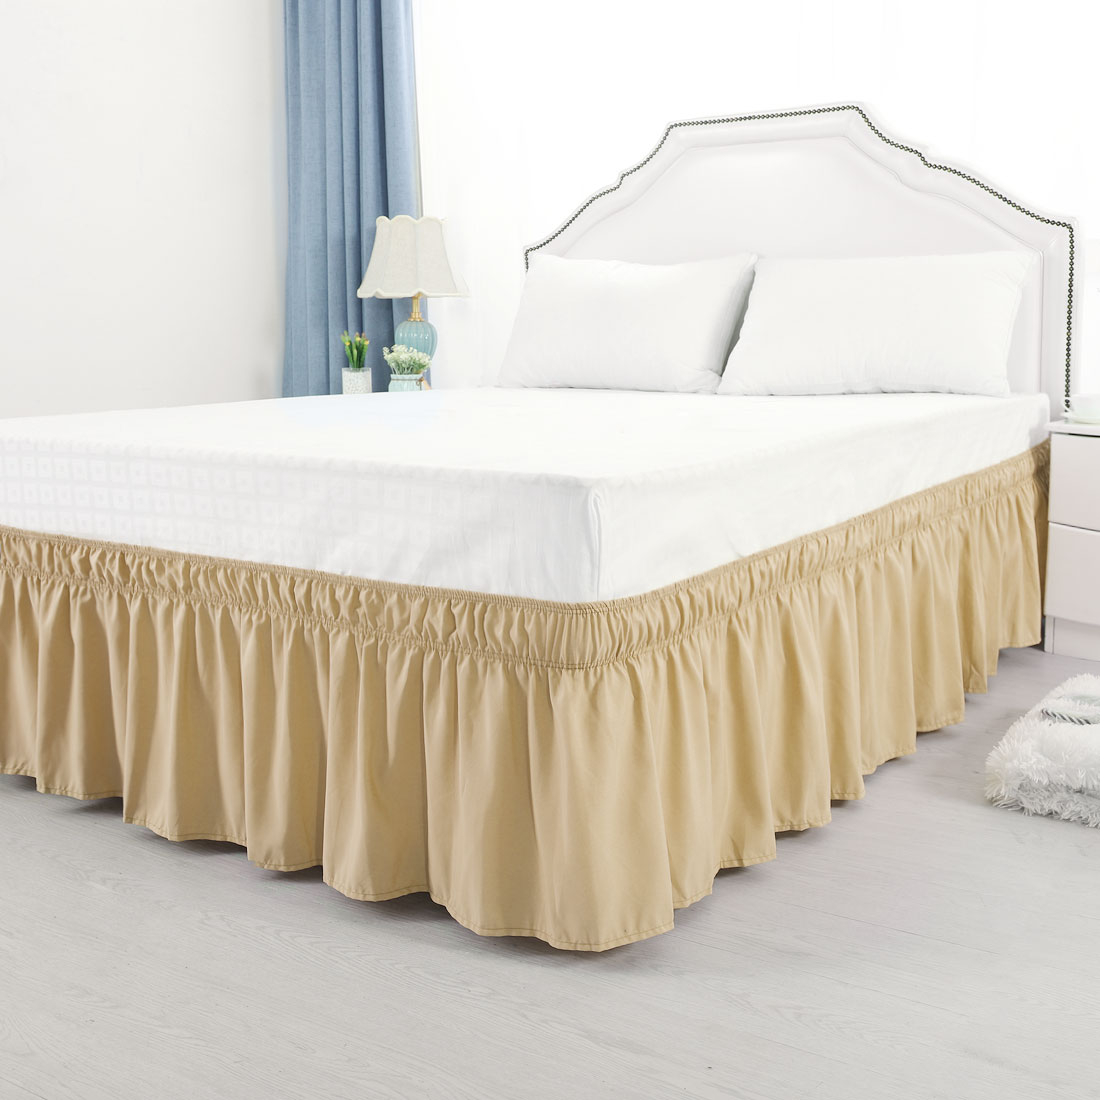 "Bed Skirt Polyester Wrap Around Dust Ruffle 15"" Drop Camel Queen:150 x 203cm - image 5 de 8"